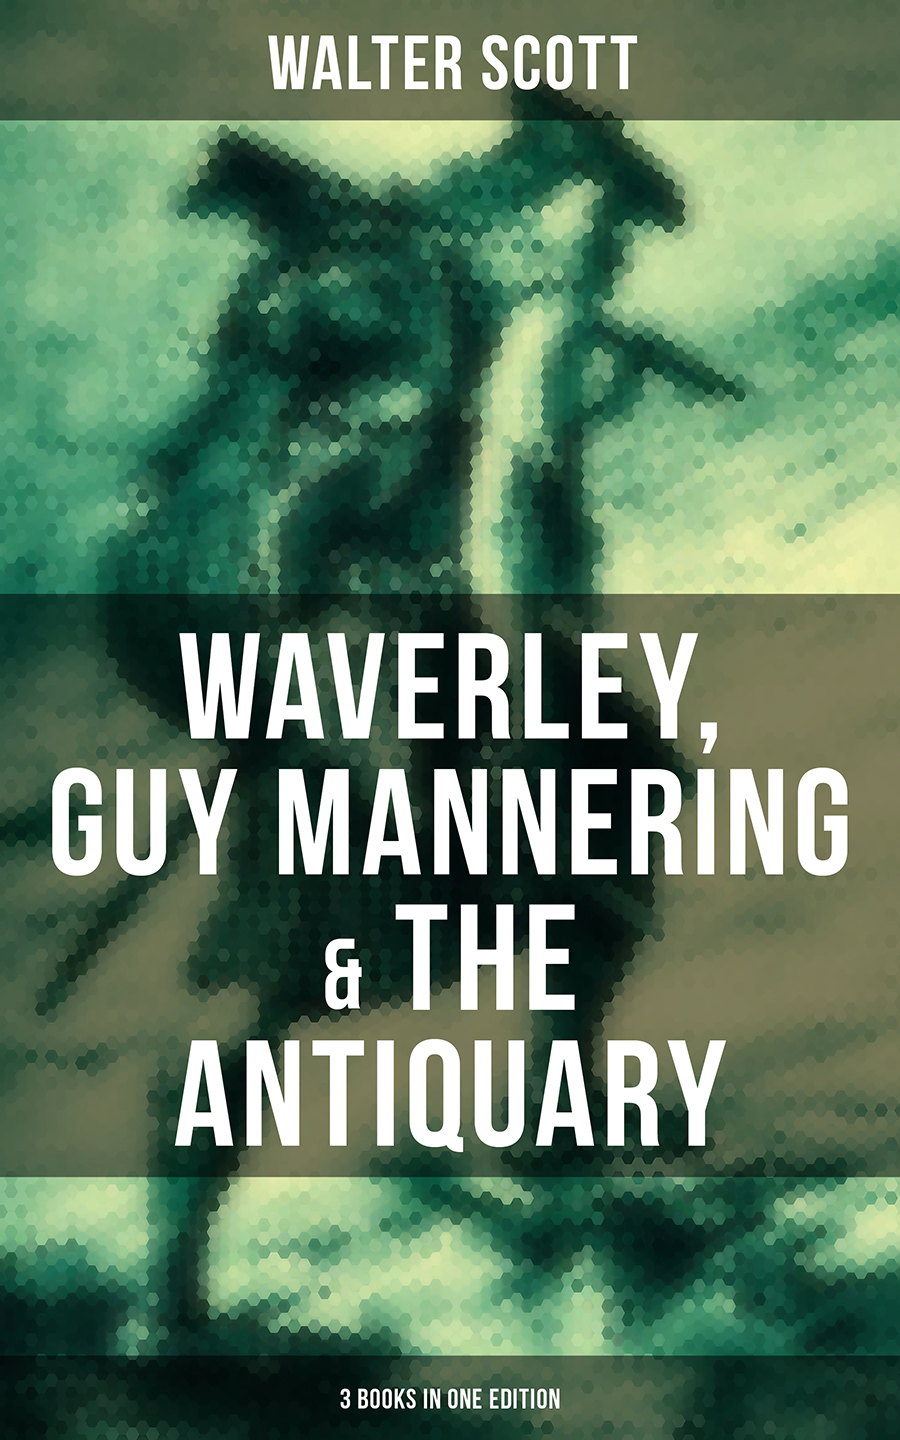 Walter Scott Walter Scott: Waverley, Guy Mannering & The Antiquary (3 Books in One Edition) scott walter guy mannering